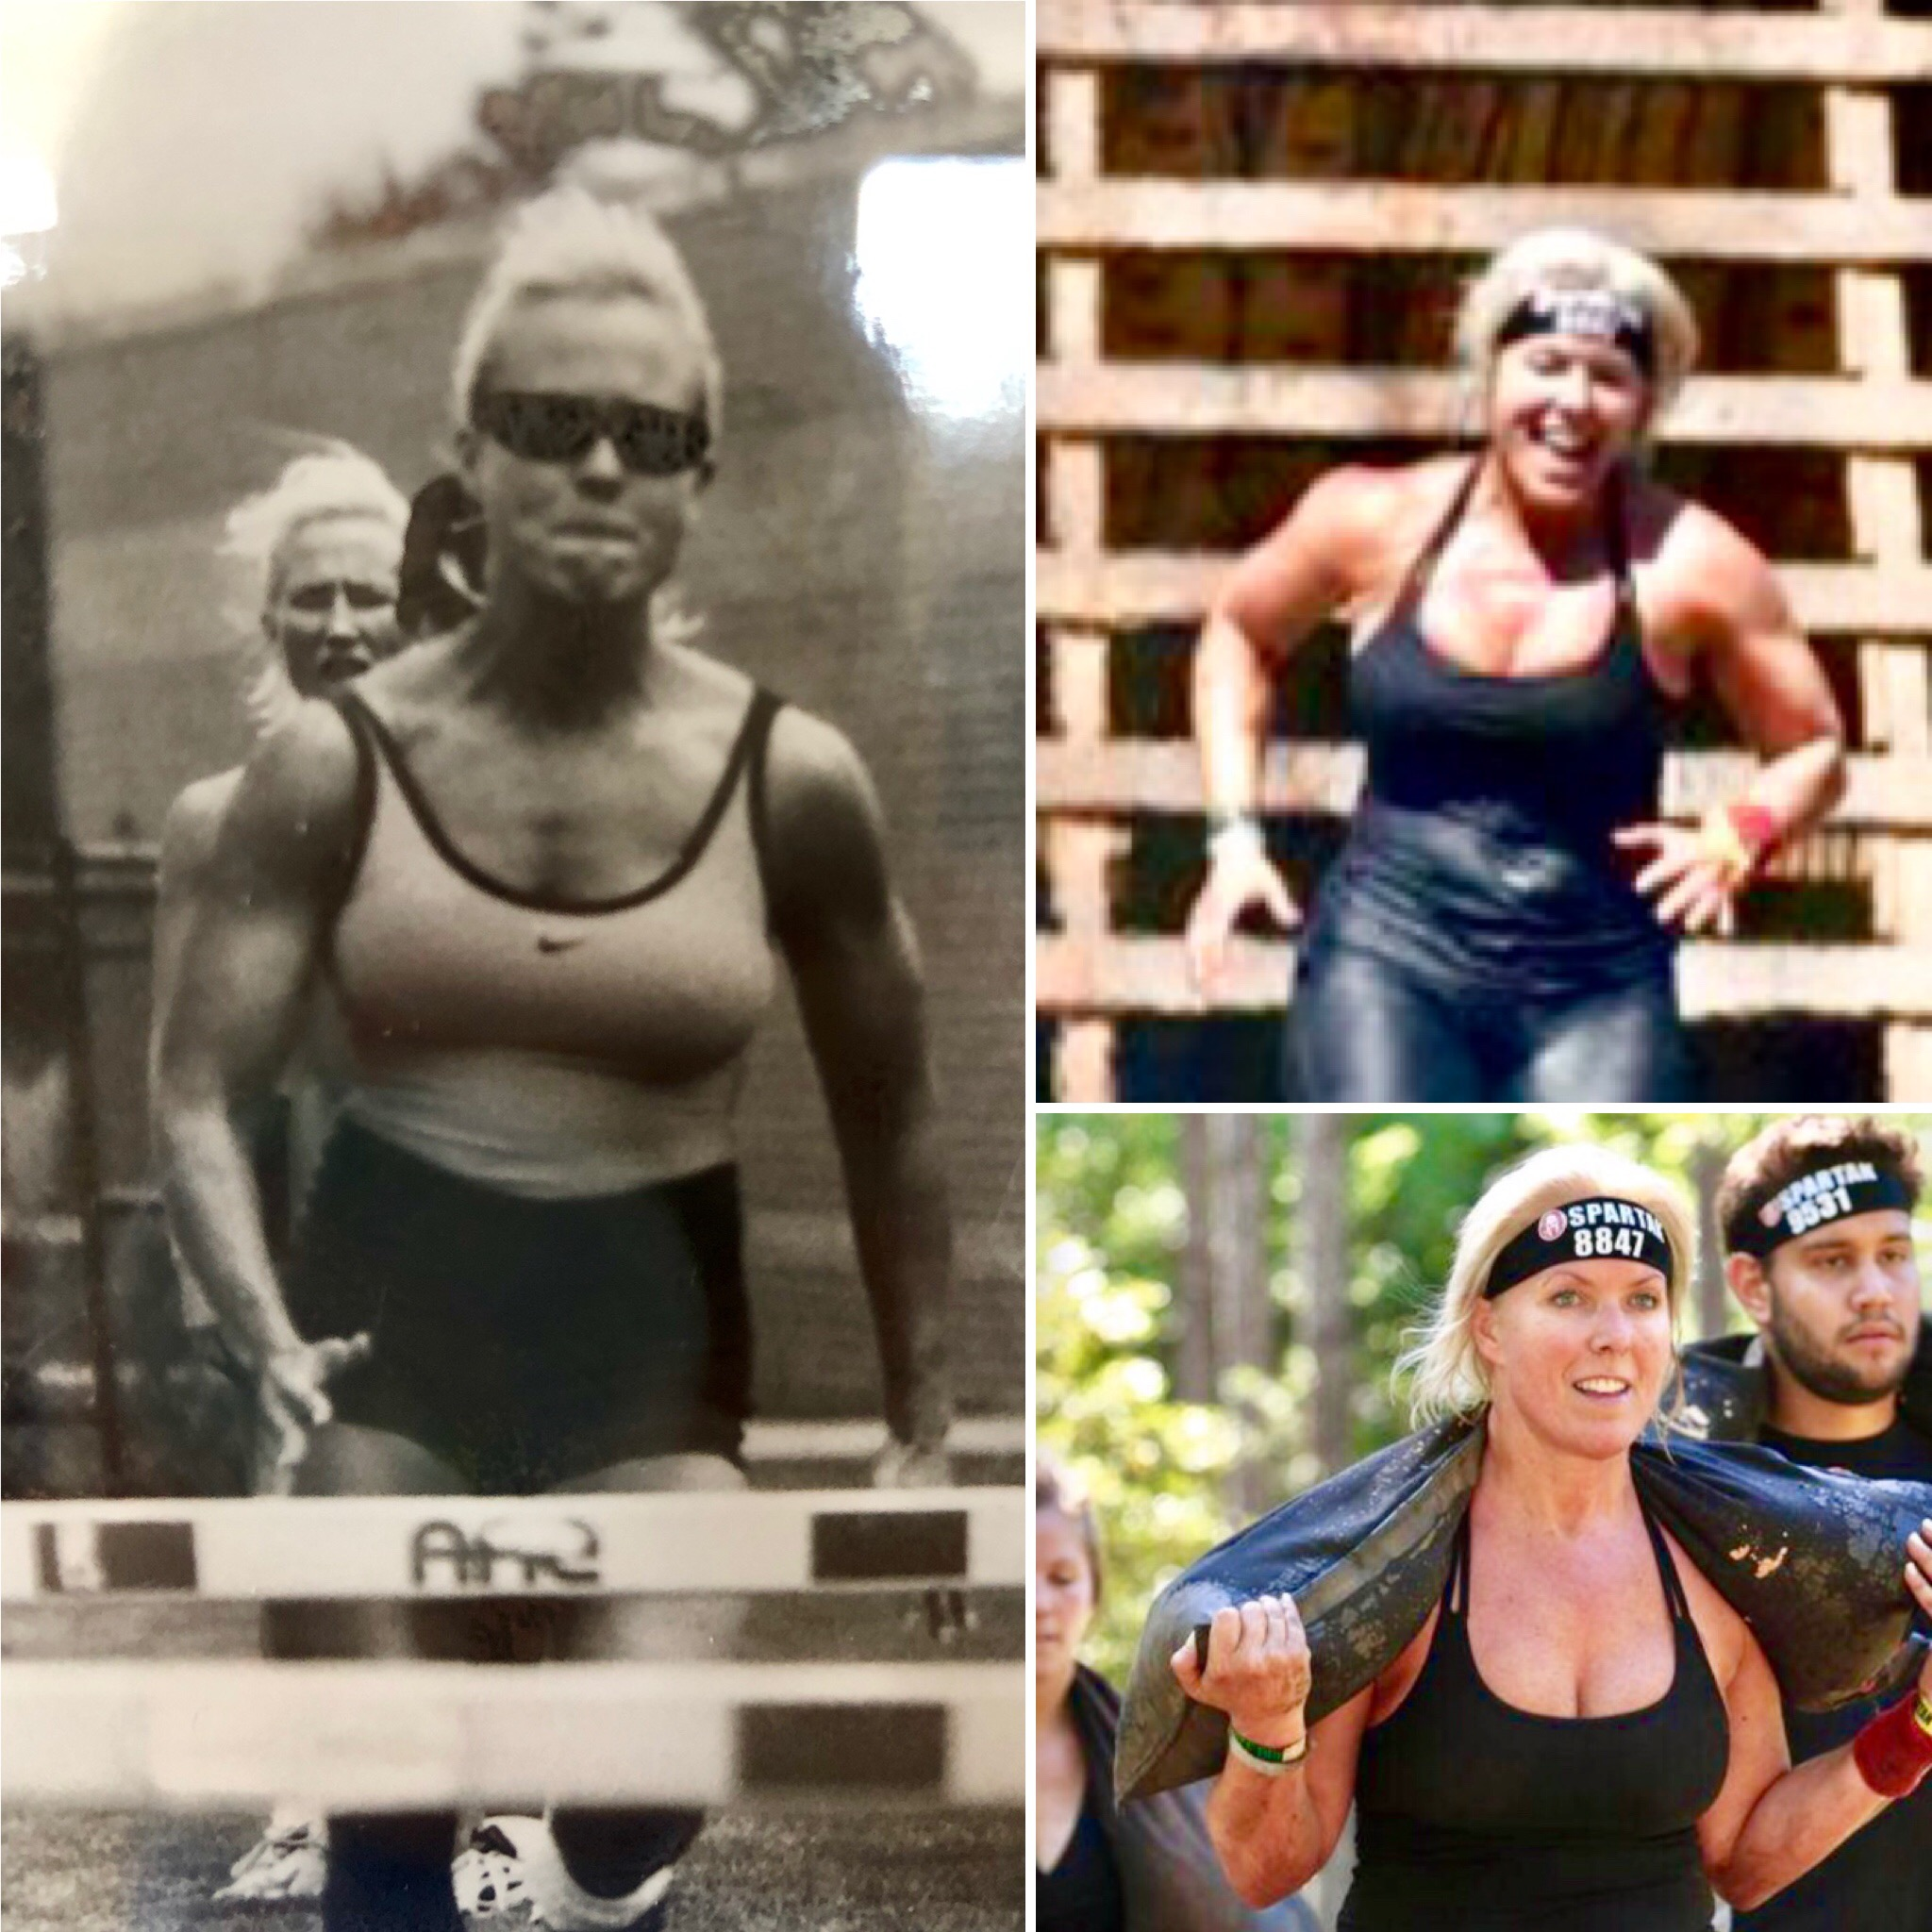 Fit For Life - 29yrs old & 49yrs old